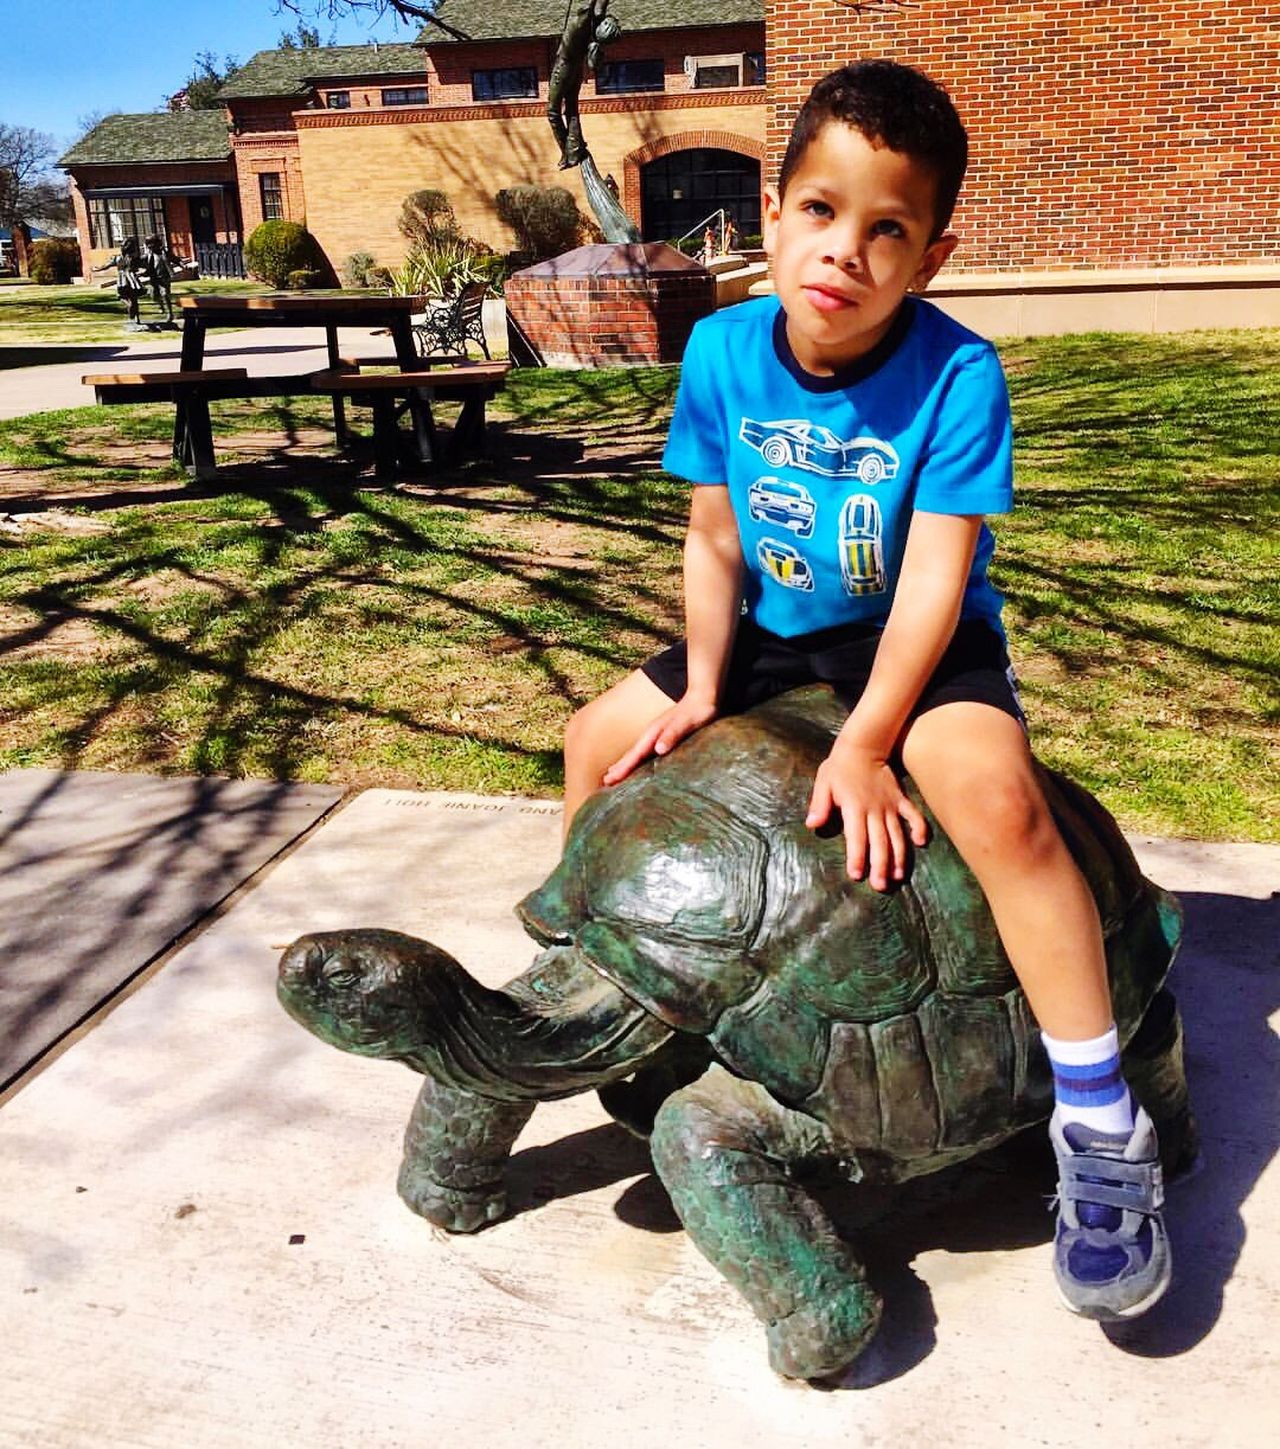 Boys One Person Childhood Portrait Children Only Child Outdoors Real People Sitting One Boy Only Full Length Happiness Smiling Playing People Day Tortoise Sculpture Museum Of The Southwest Midland, TX Childhood Memories